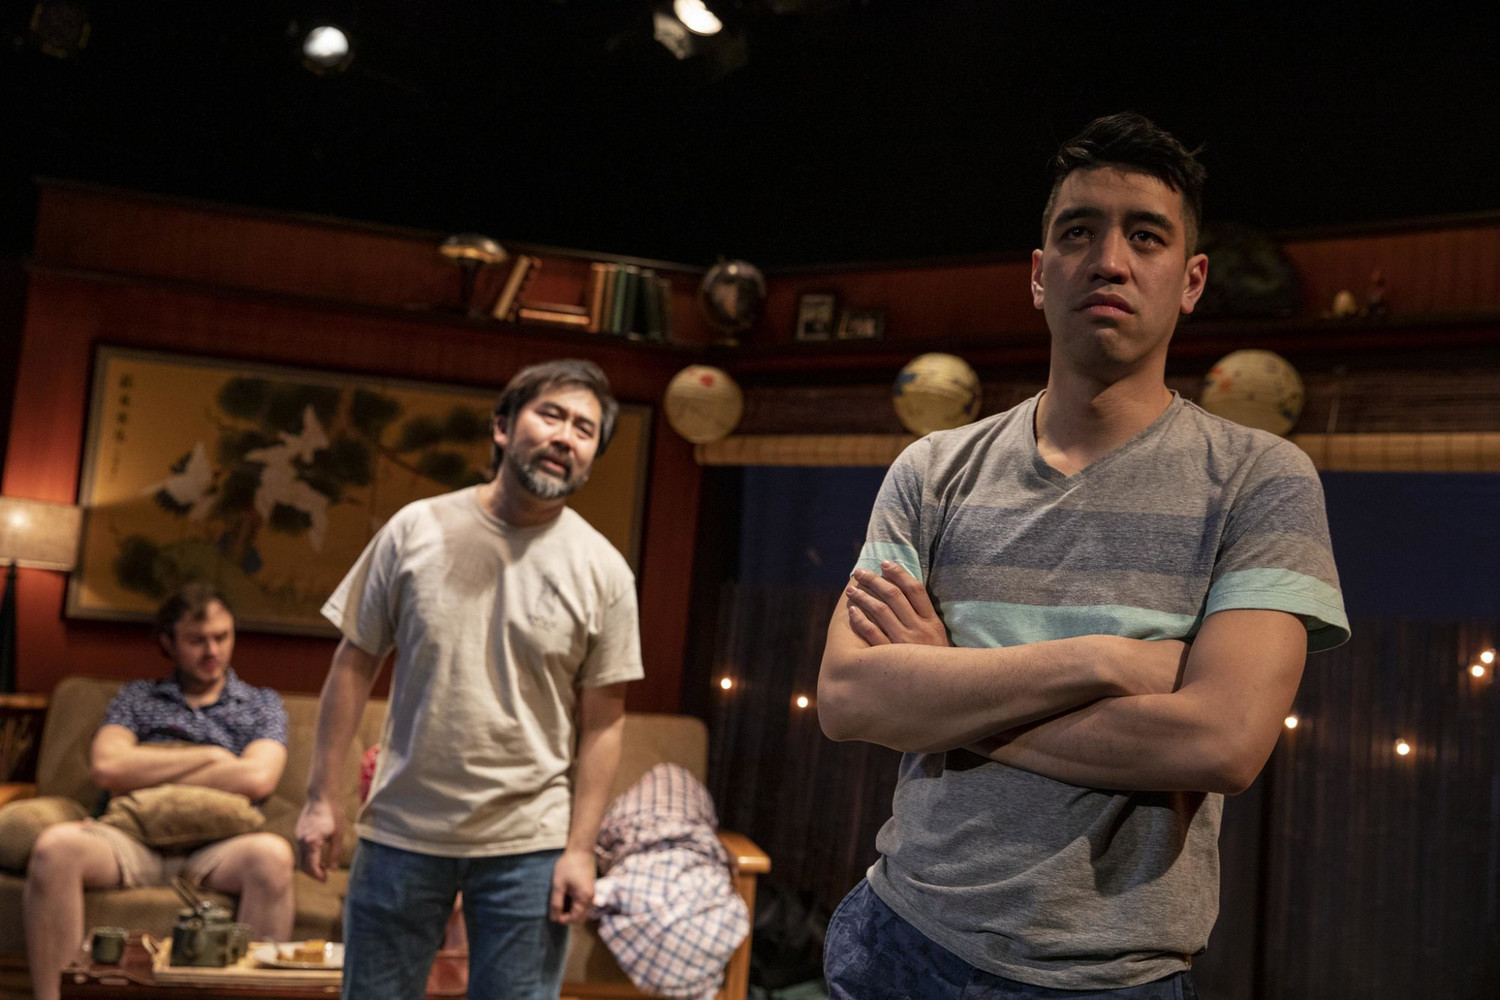 BWW Review: JUNE IS THE FIRST FALL a celebration of family and forgiveness